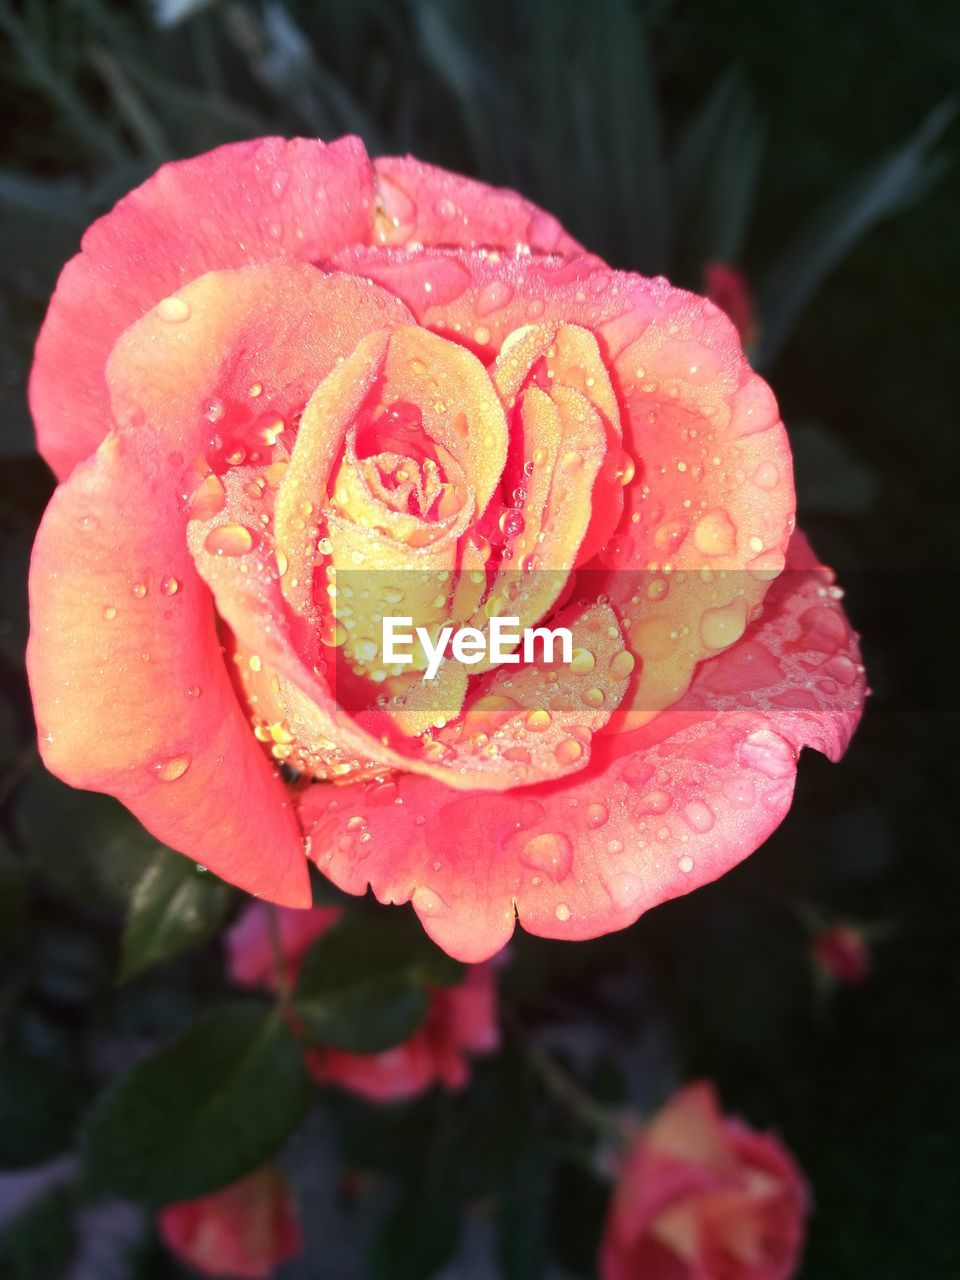 flowering plant, flower, beauty in nature, petal, plant, vulnerability, fragility, freshness, inflorescence, flower head, growth, close-up, drop, water, wet, nature, focus on foreground, rose, pink color, no people, outdoors, rain, rose - flower, dew, purity, raindrop